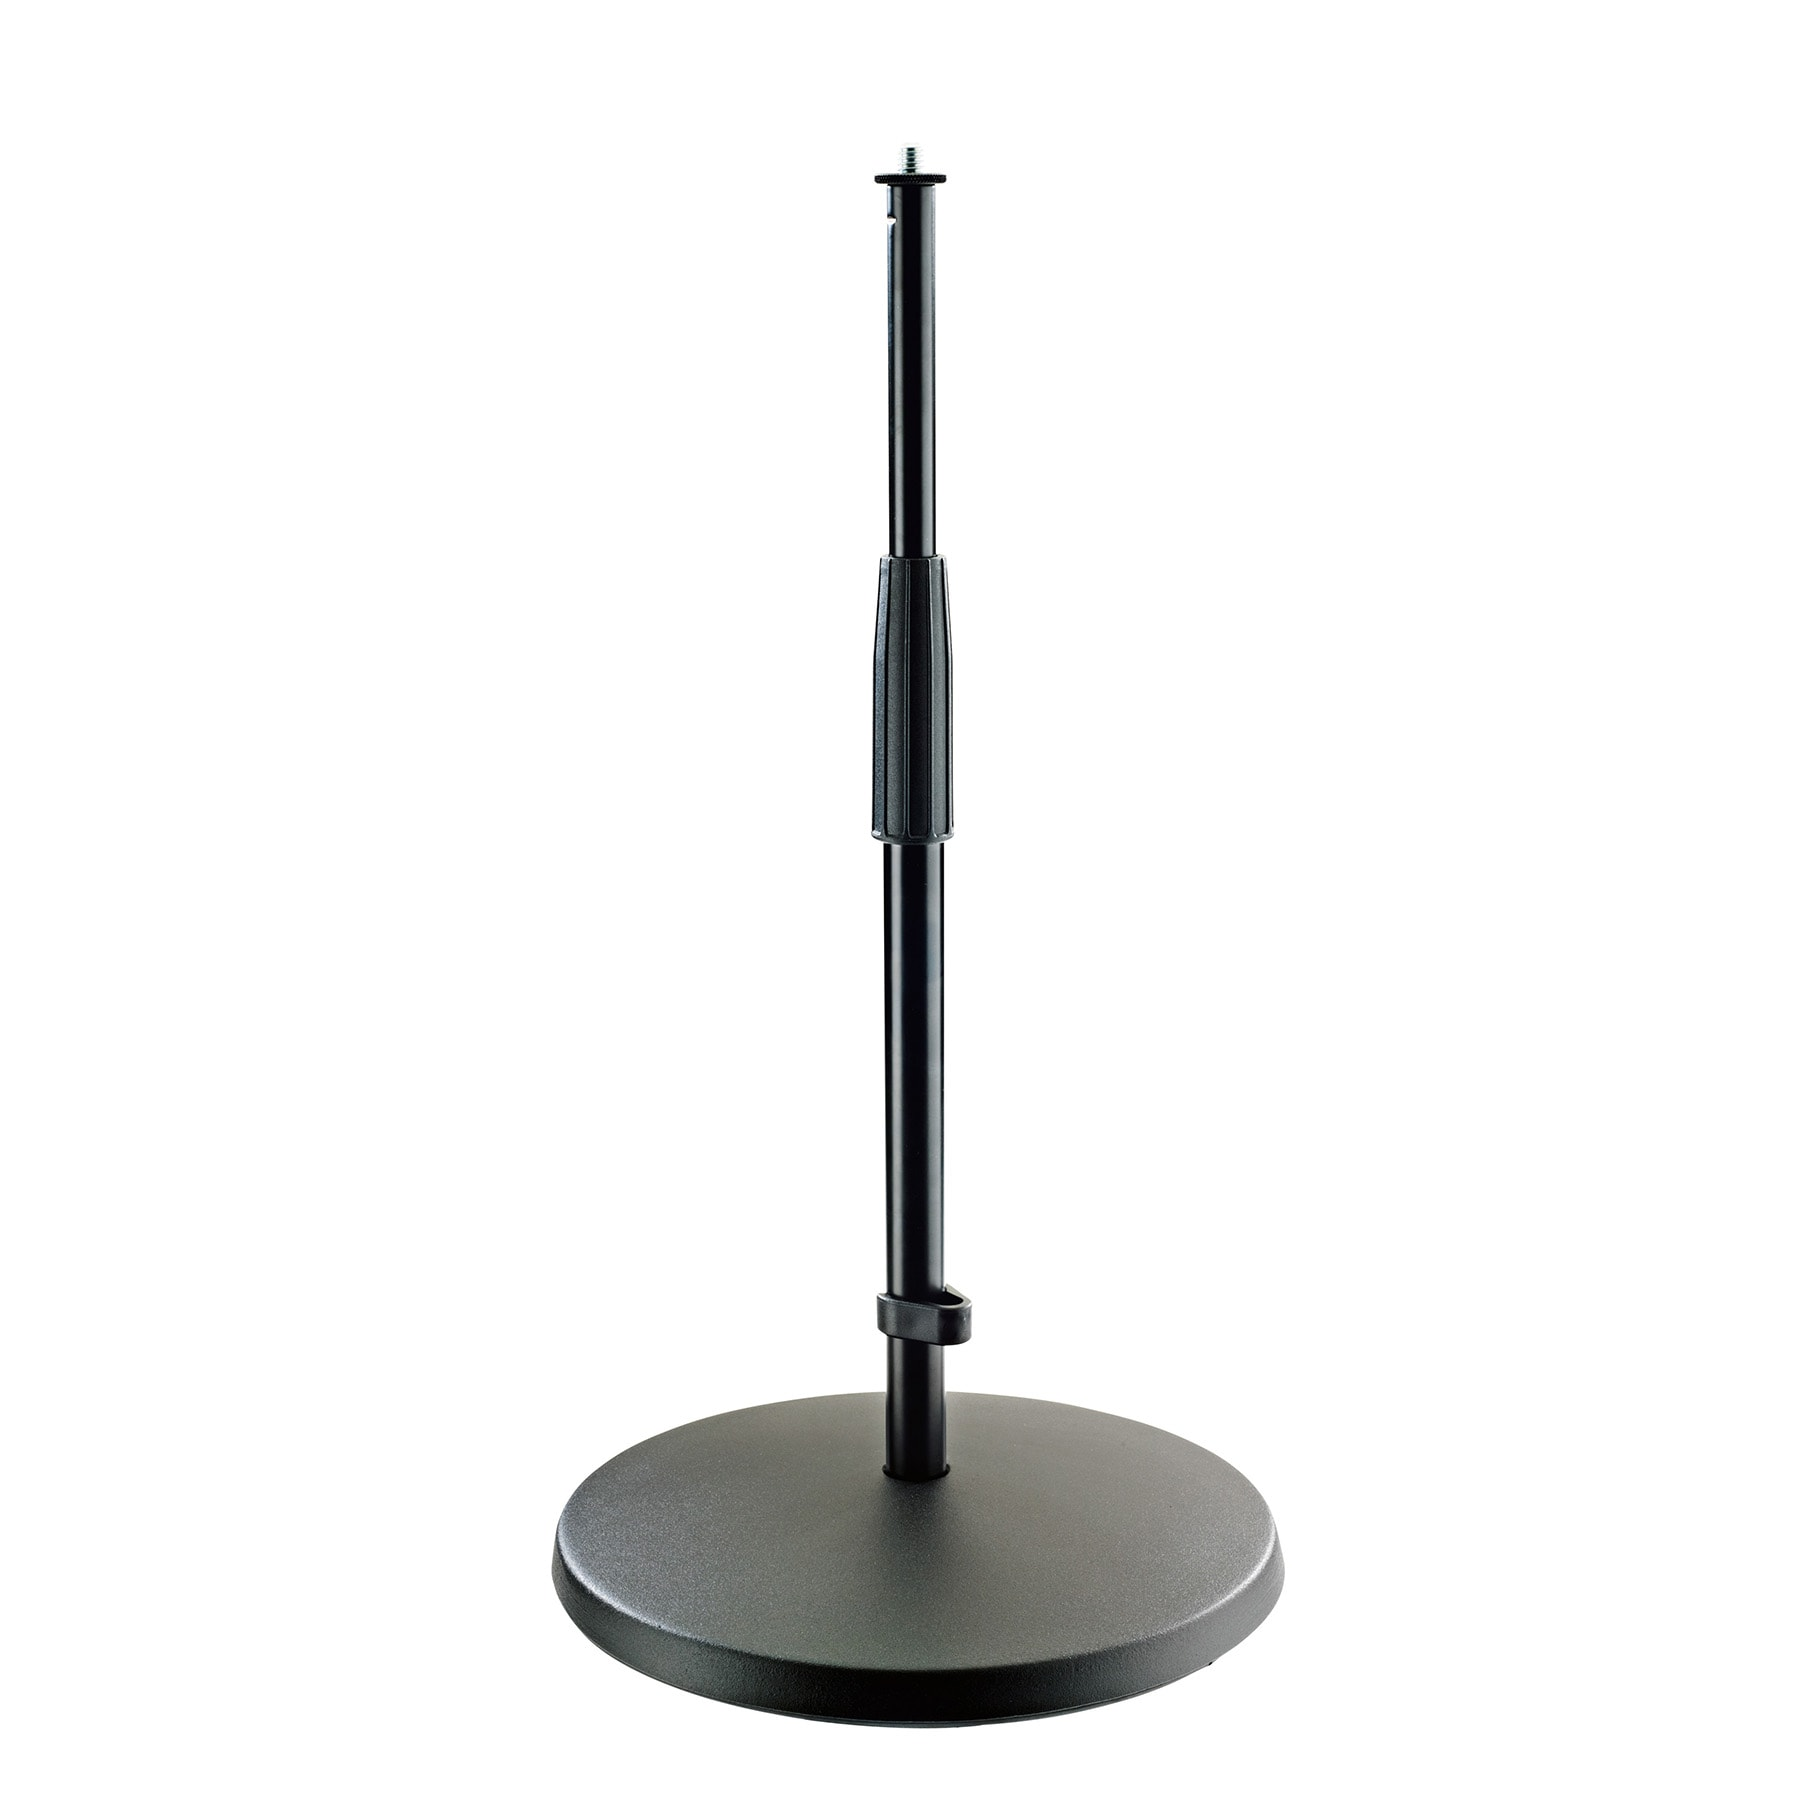 KM23323 - Microphone stand